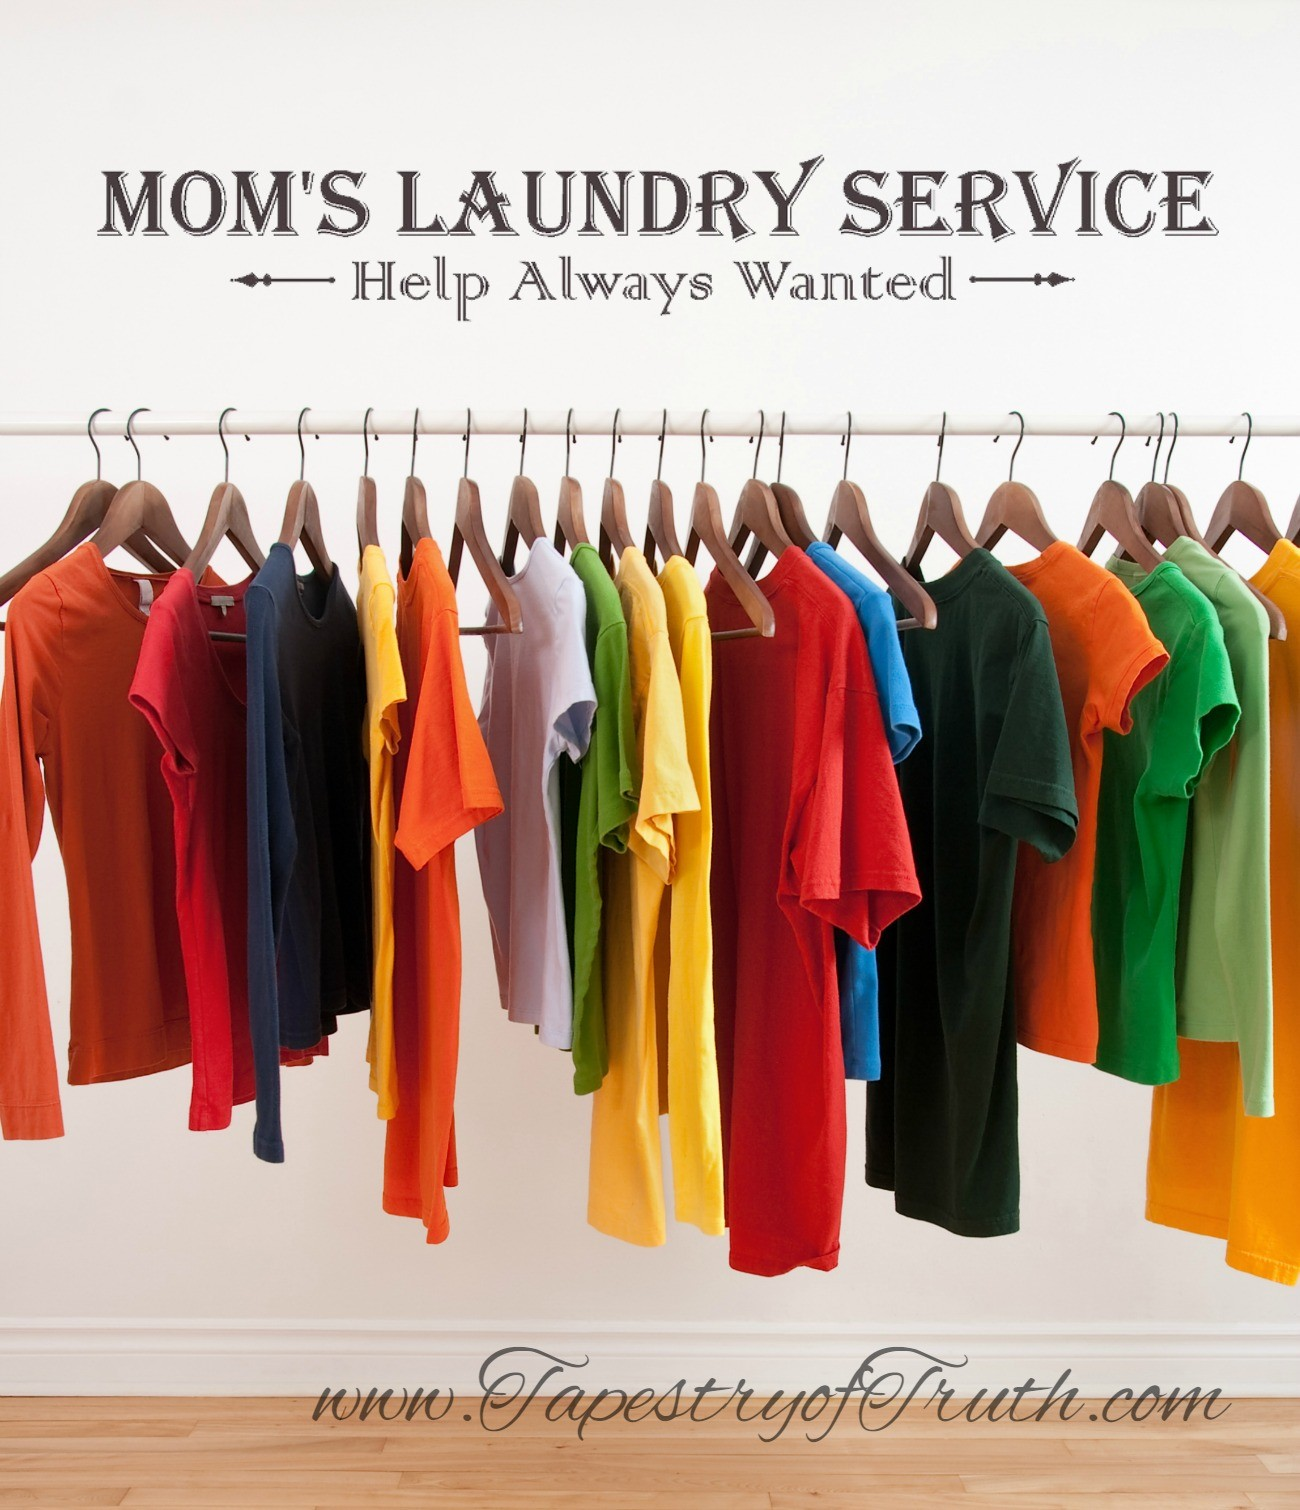 Mom's Laundry Service - Help Always Wanted